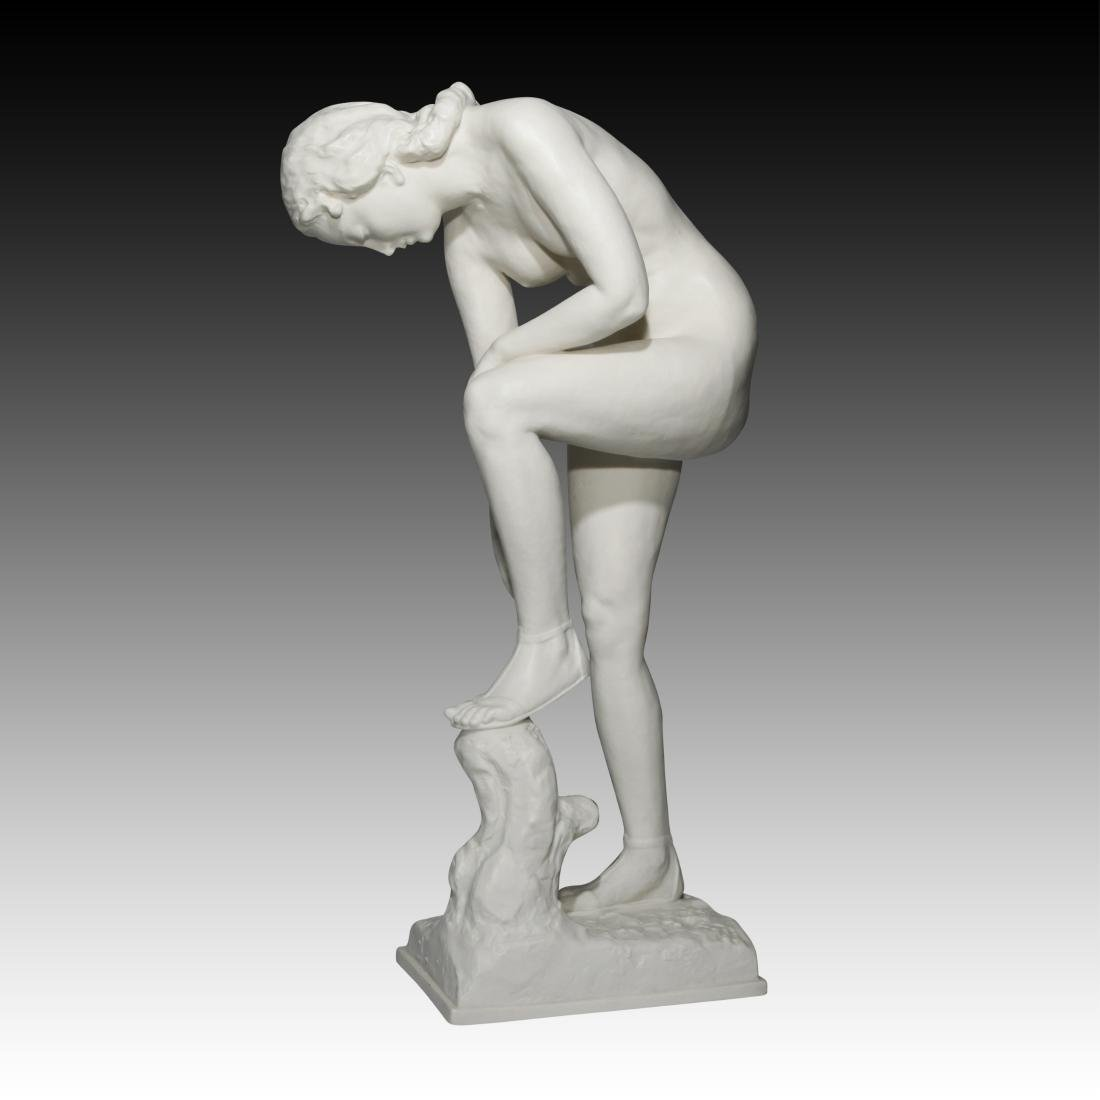 Hutschenreuther Nude Figurine with Bisque Finish - 3